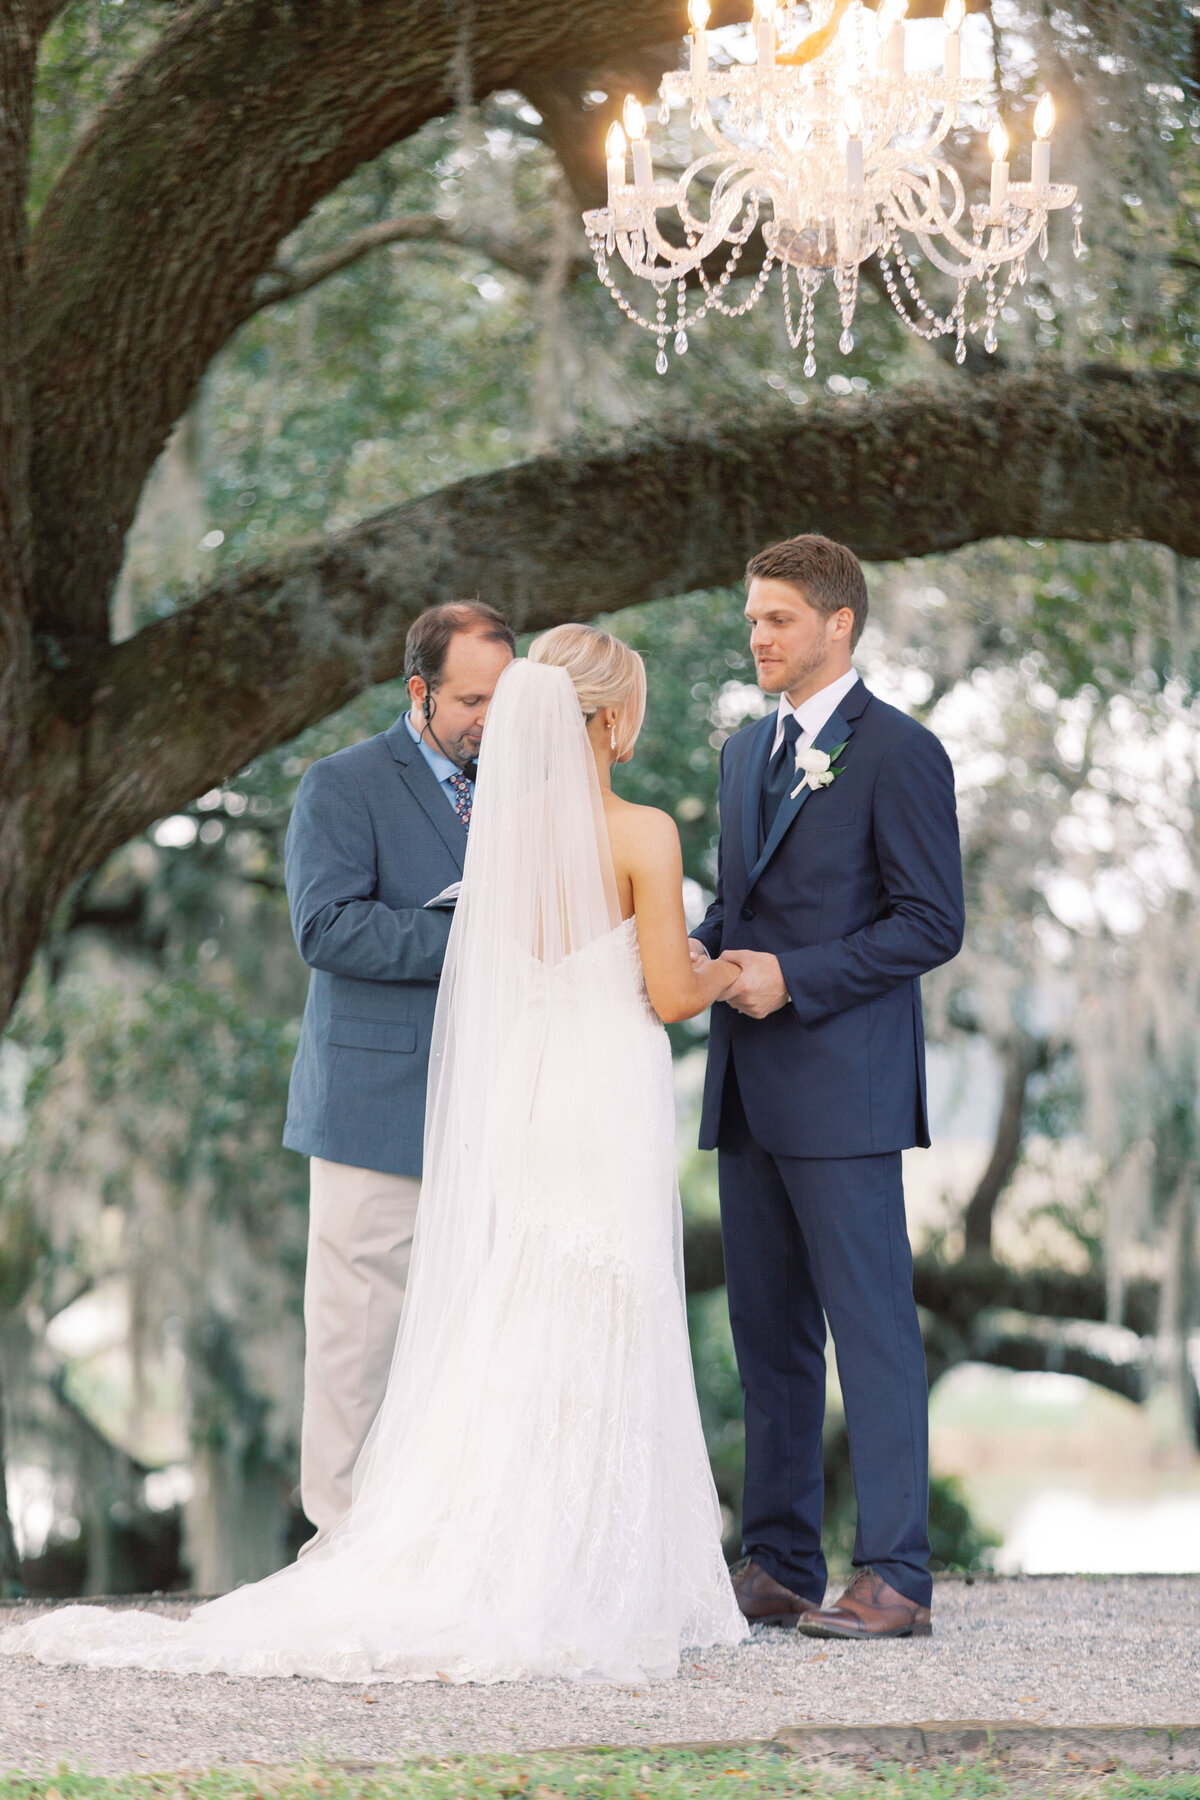 Melton_Wedding__Middleton_Place_Plantation_Charleston_South_Carolina_Jacksonville_Florida_Devon_Donnahoo_Photography__0630